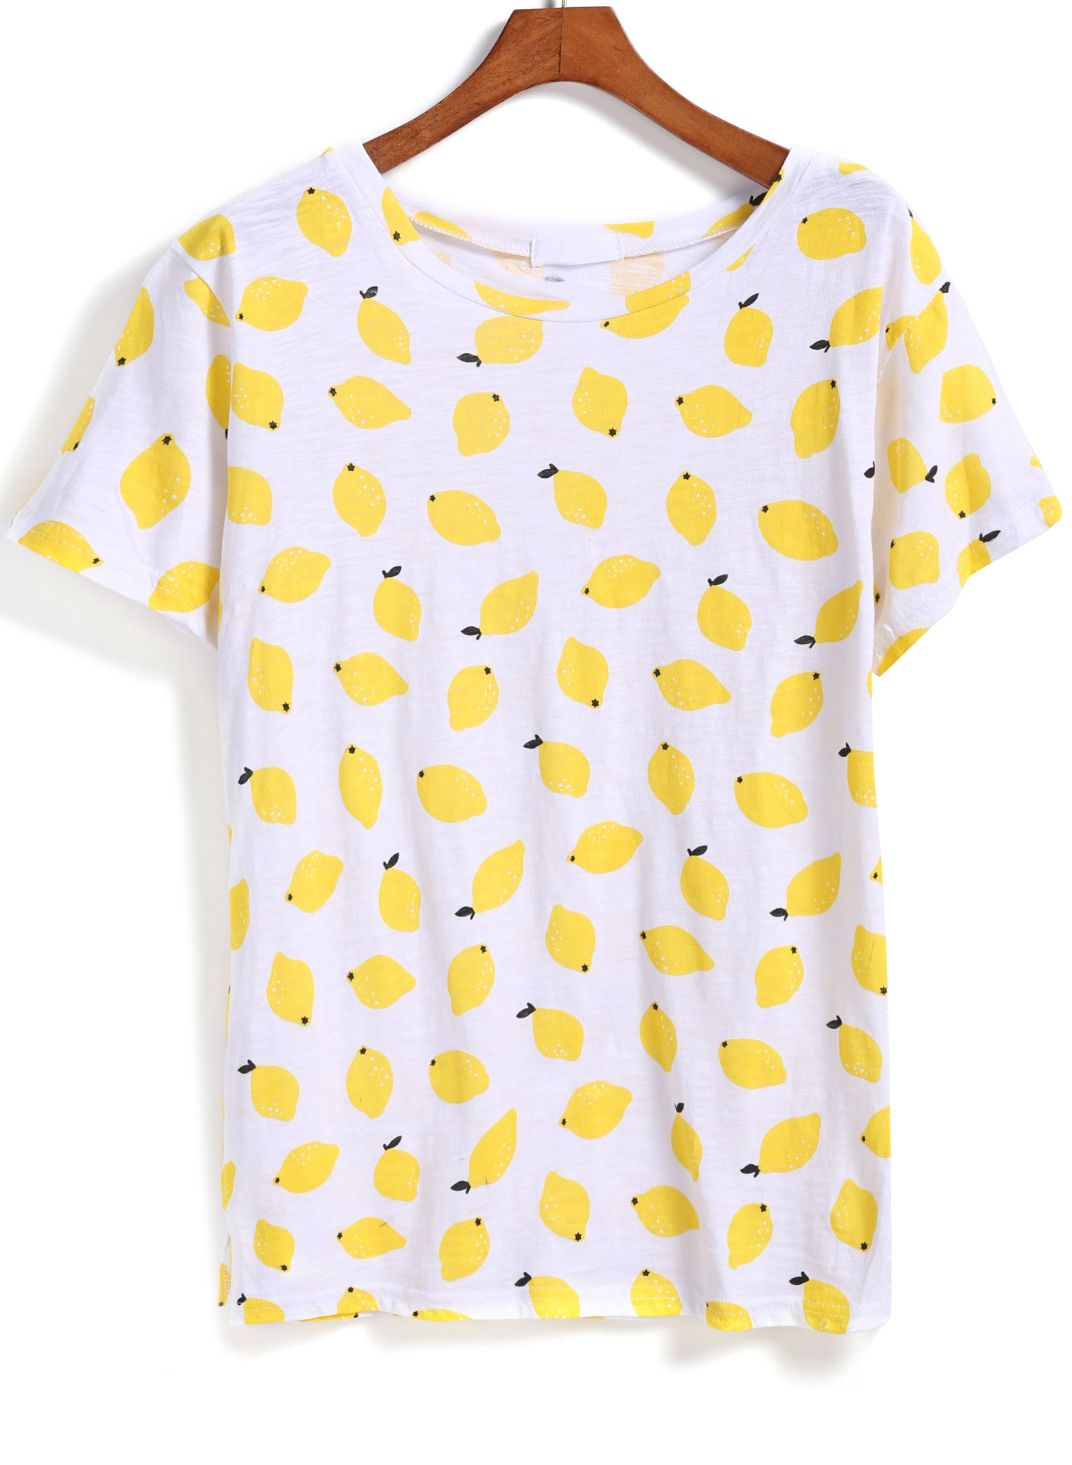 b8b5ba894be Shop Yellow Short Sleeve Lemon Print T-Shirt online. SheIn offers Yellow Short  Sleeve Lemon Print T-Shirt   more to fit your fashionable needs.